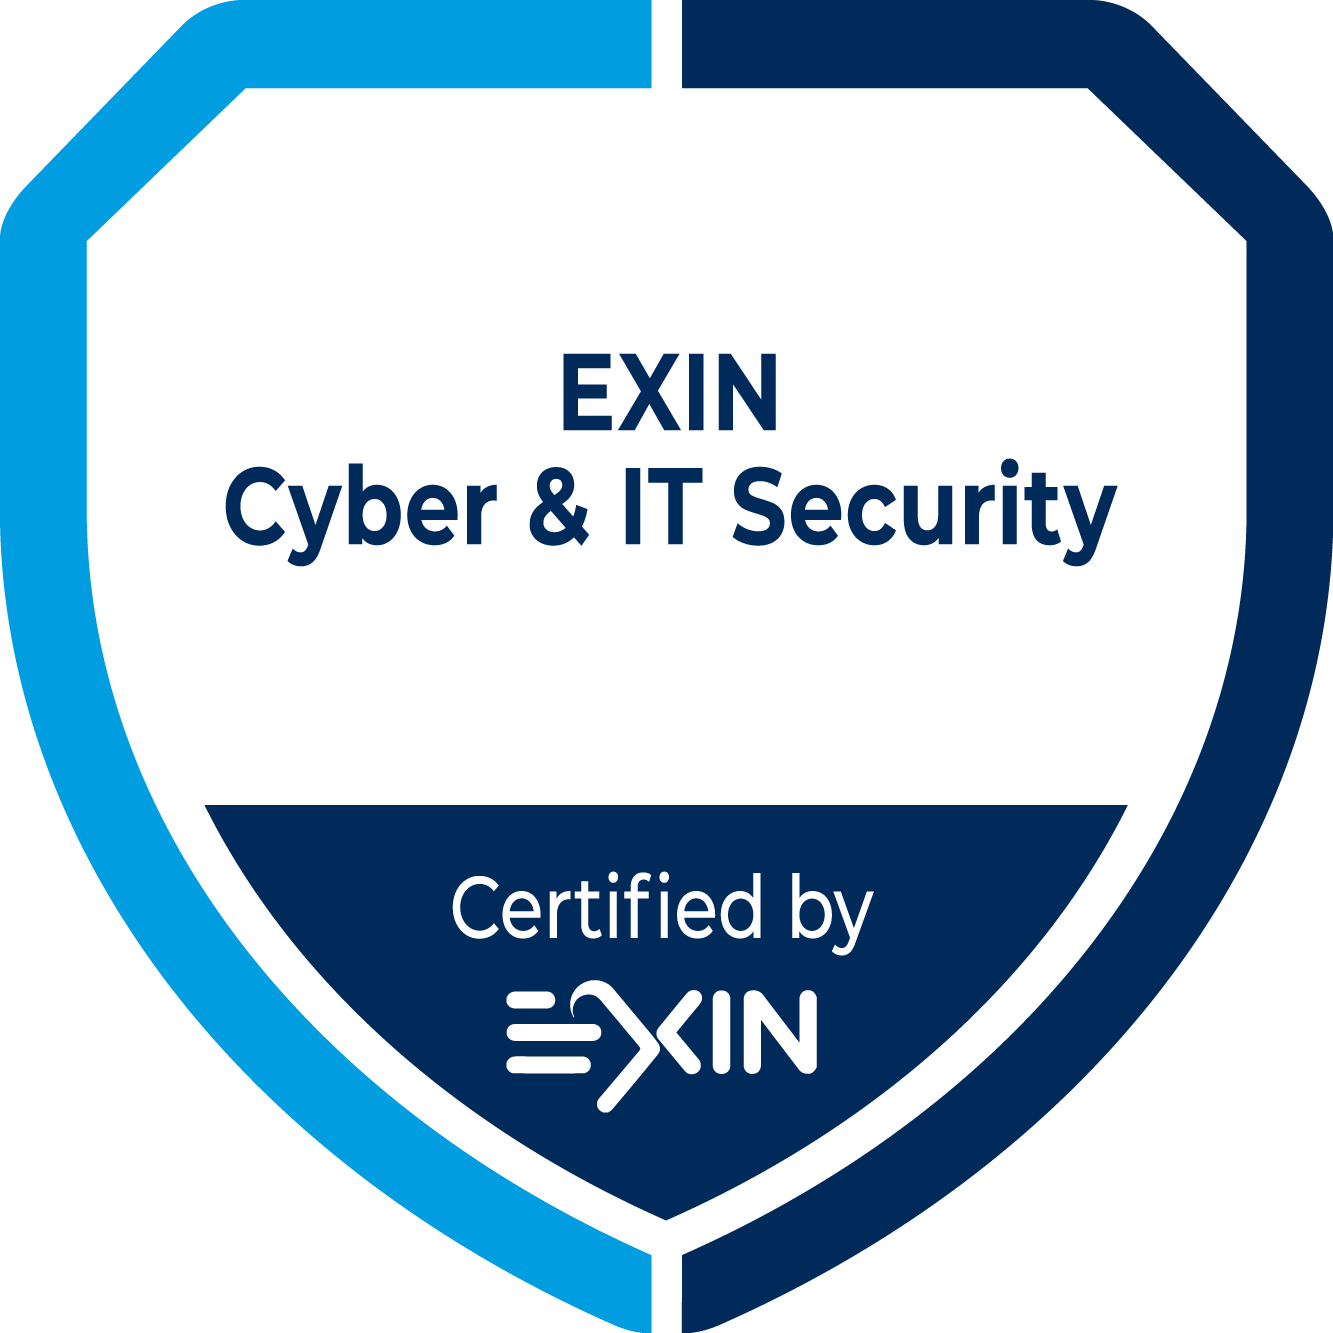 EXIN Cyber and IT Security